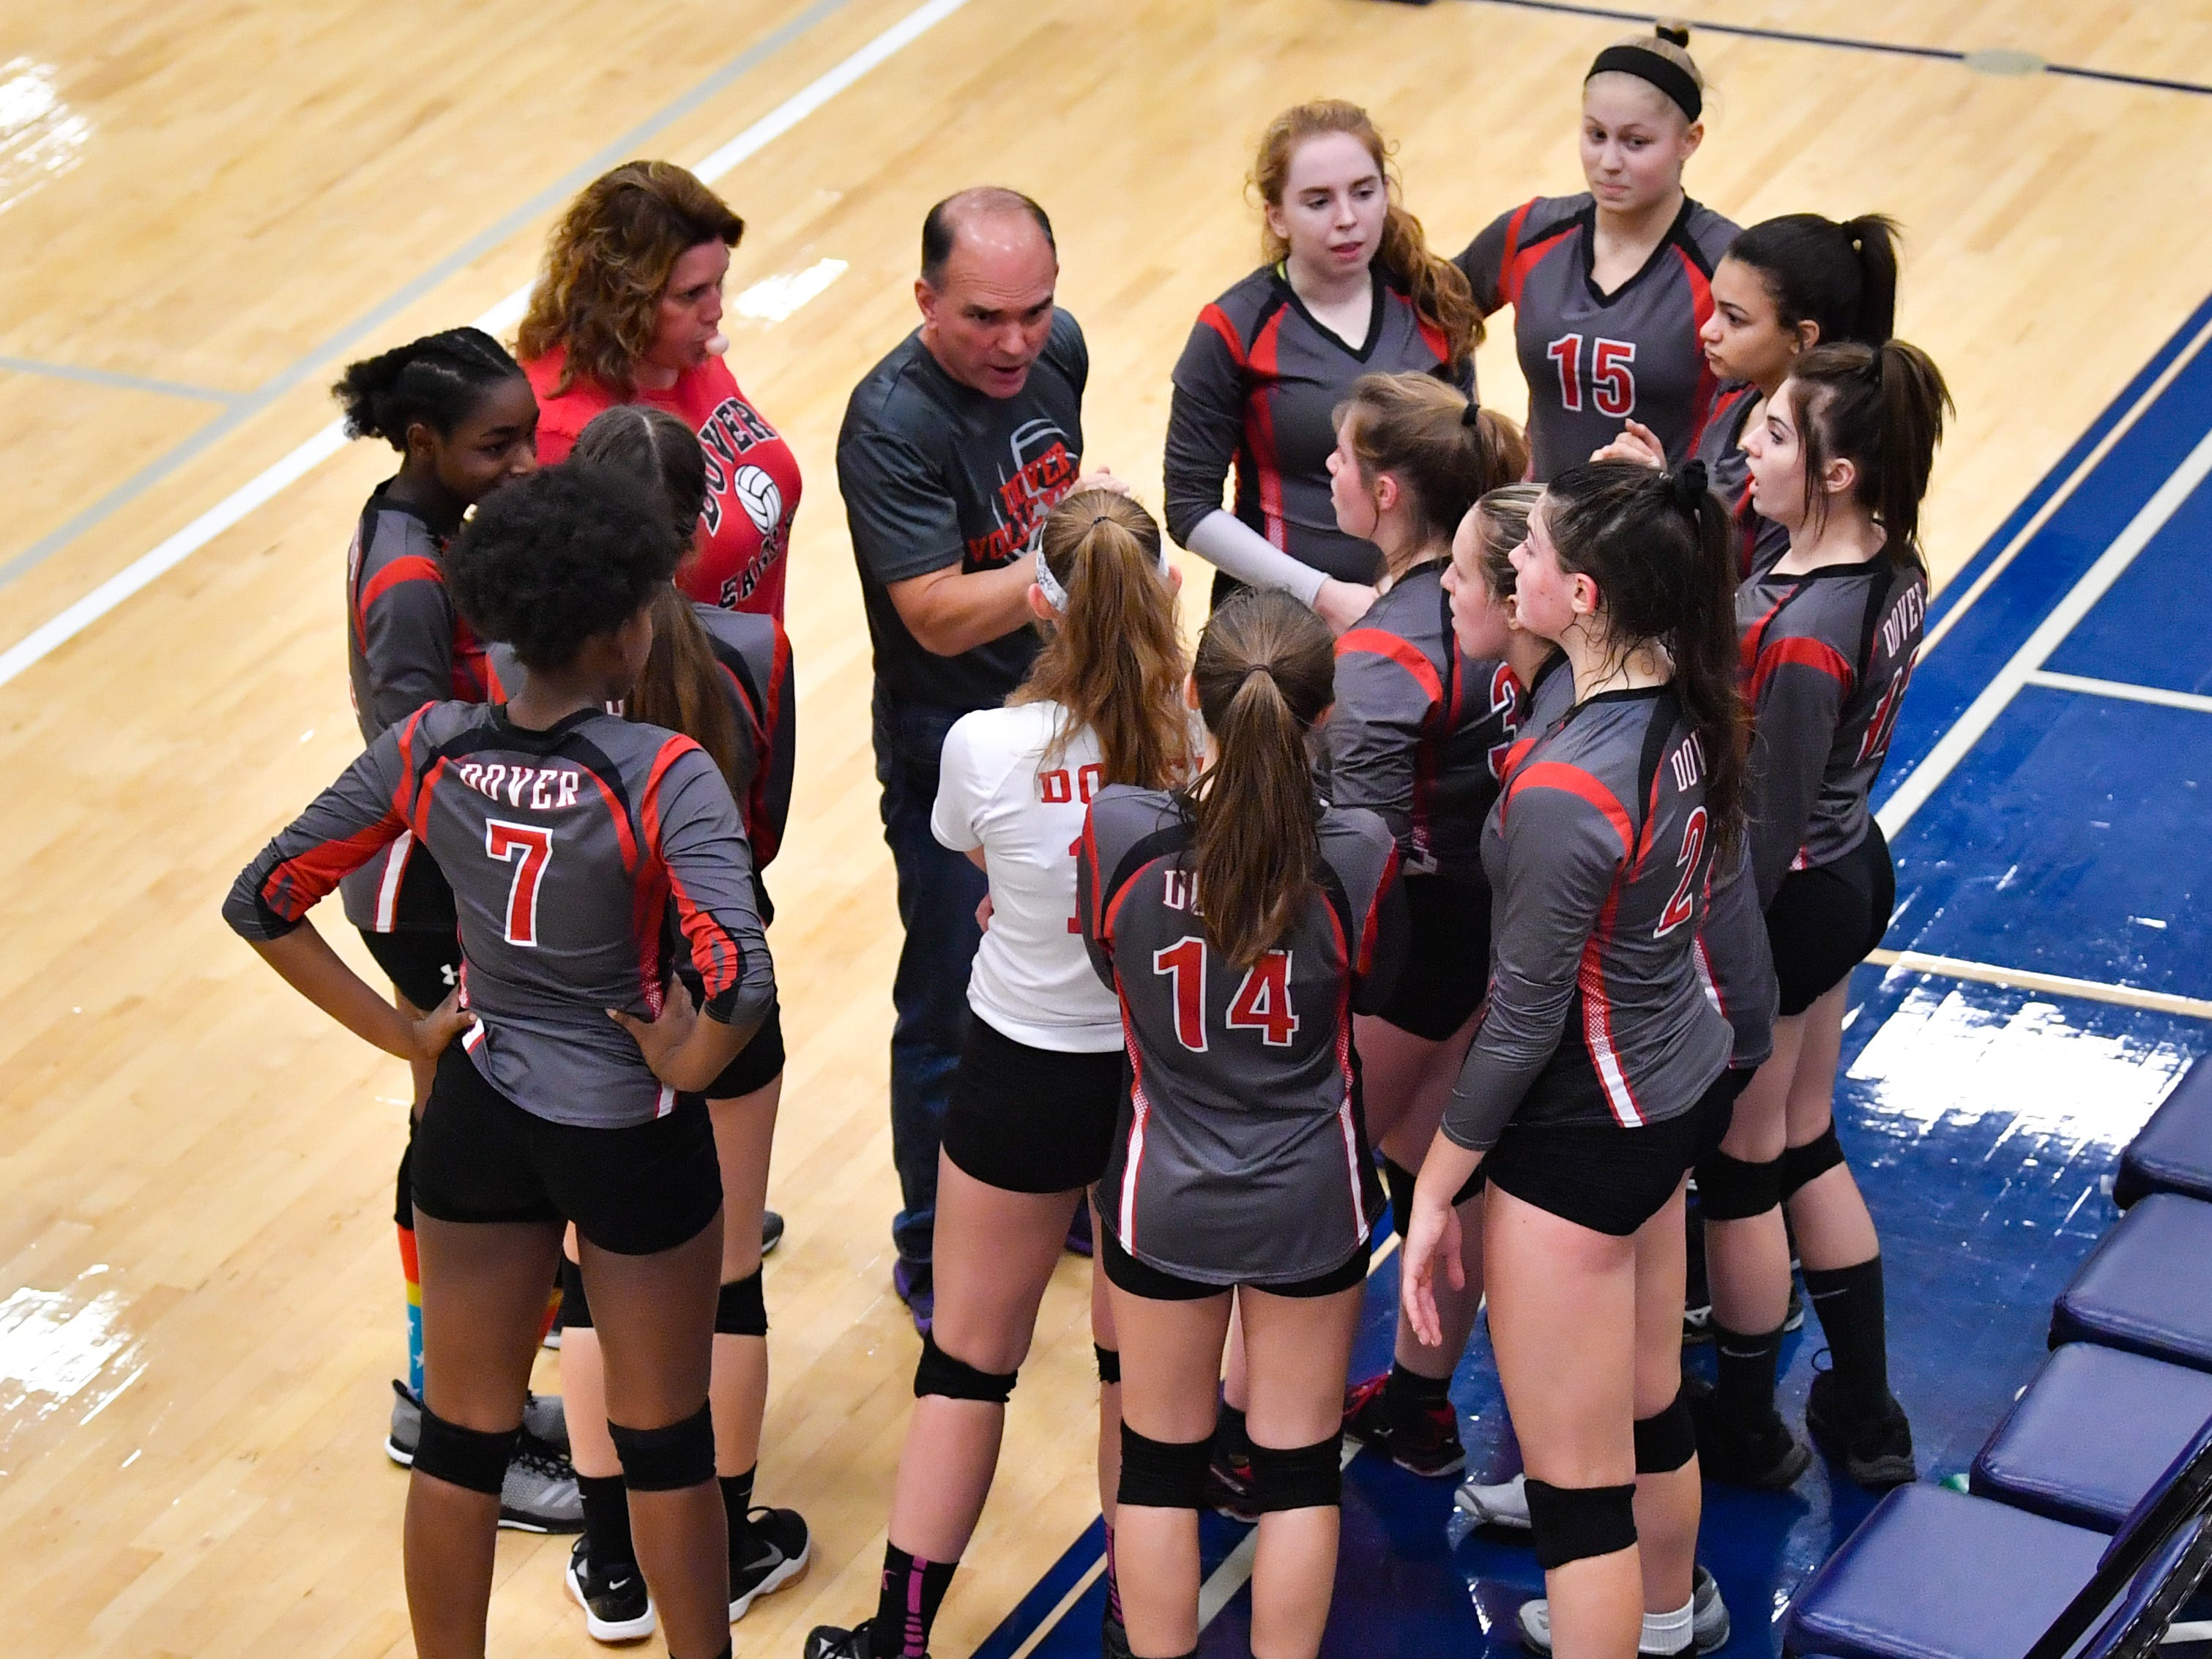 Dover discusses their next plan of attack during the District 3 Class 3A girls' volleyball quarterfinals between Dover and York Suburban at West York High School, October 30, 2018. The Eagles defeated the Trojans 3-2.